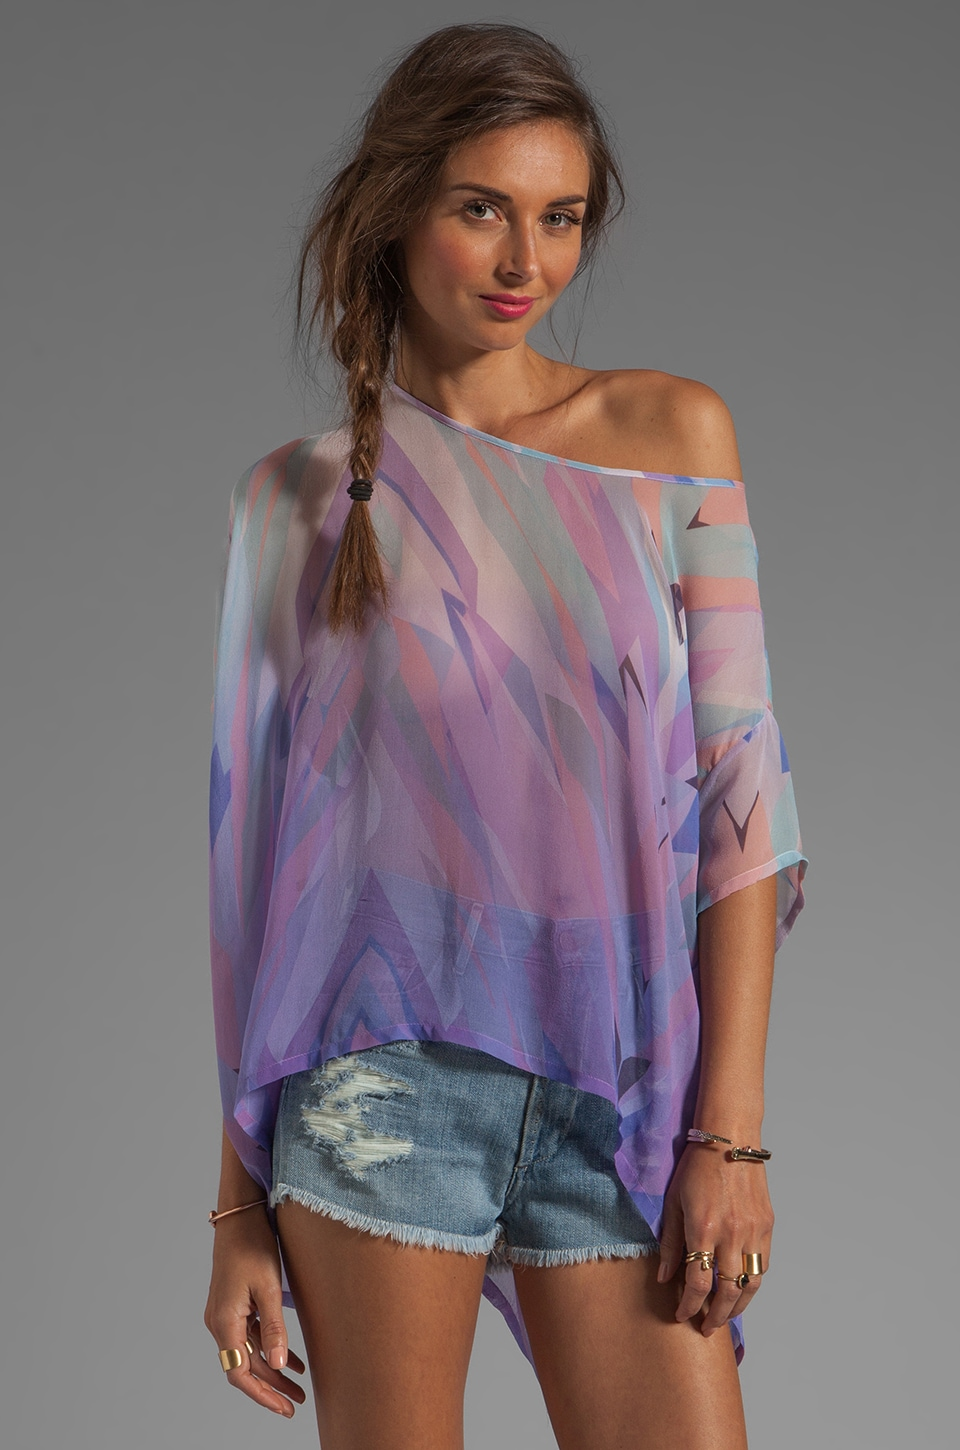 Gypsy 05 Prim Geo Print S/S Square Blouse in Orchid